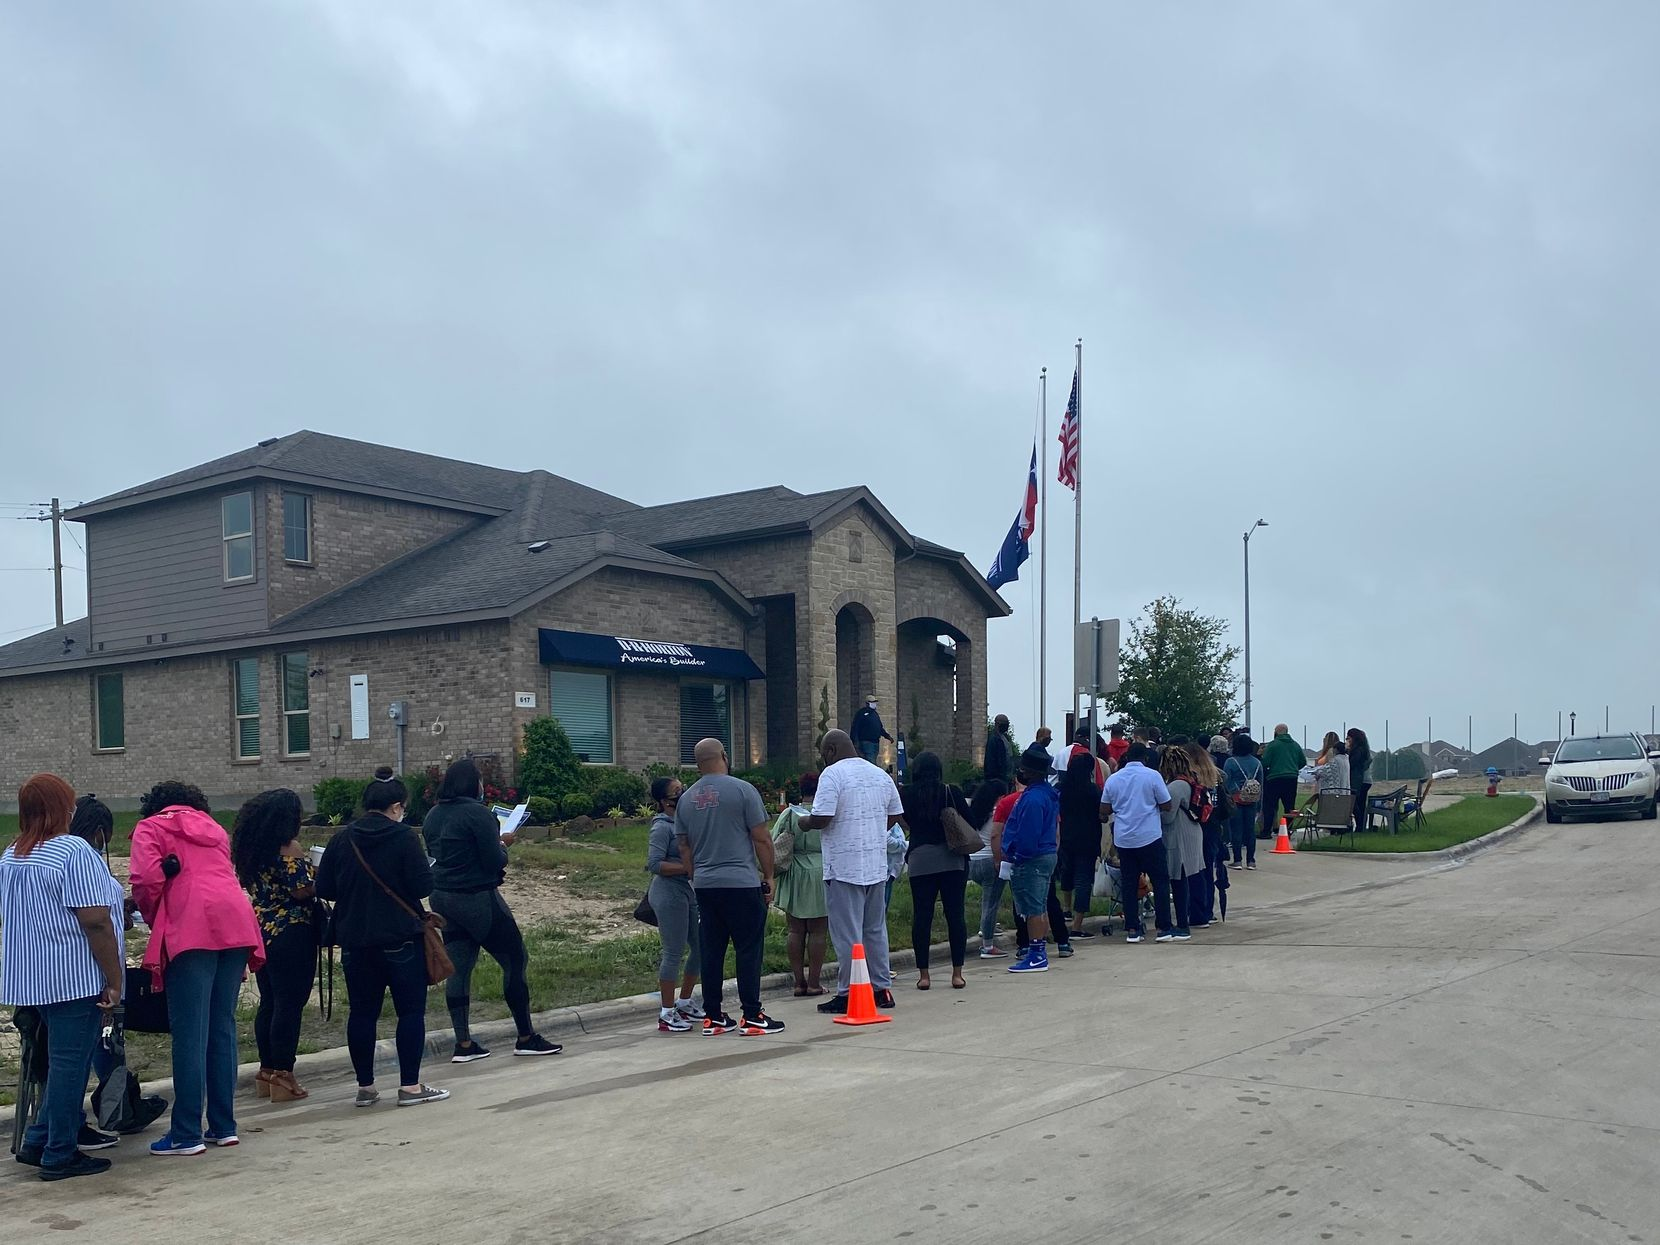 Potential homebuyers lined up for a D.R. Horton lottery in Glenn Heights on May 1. (Navjot Singh)